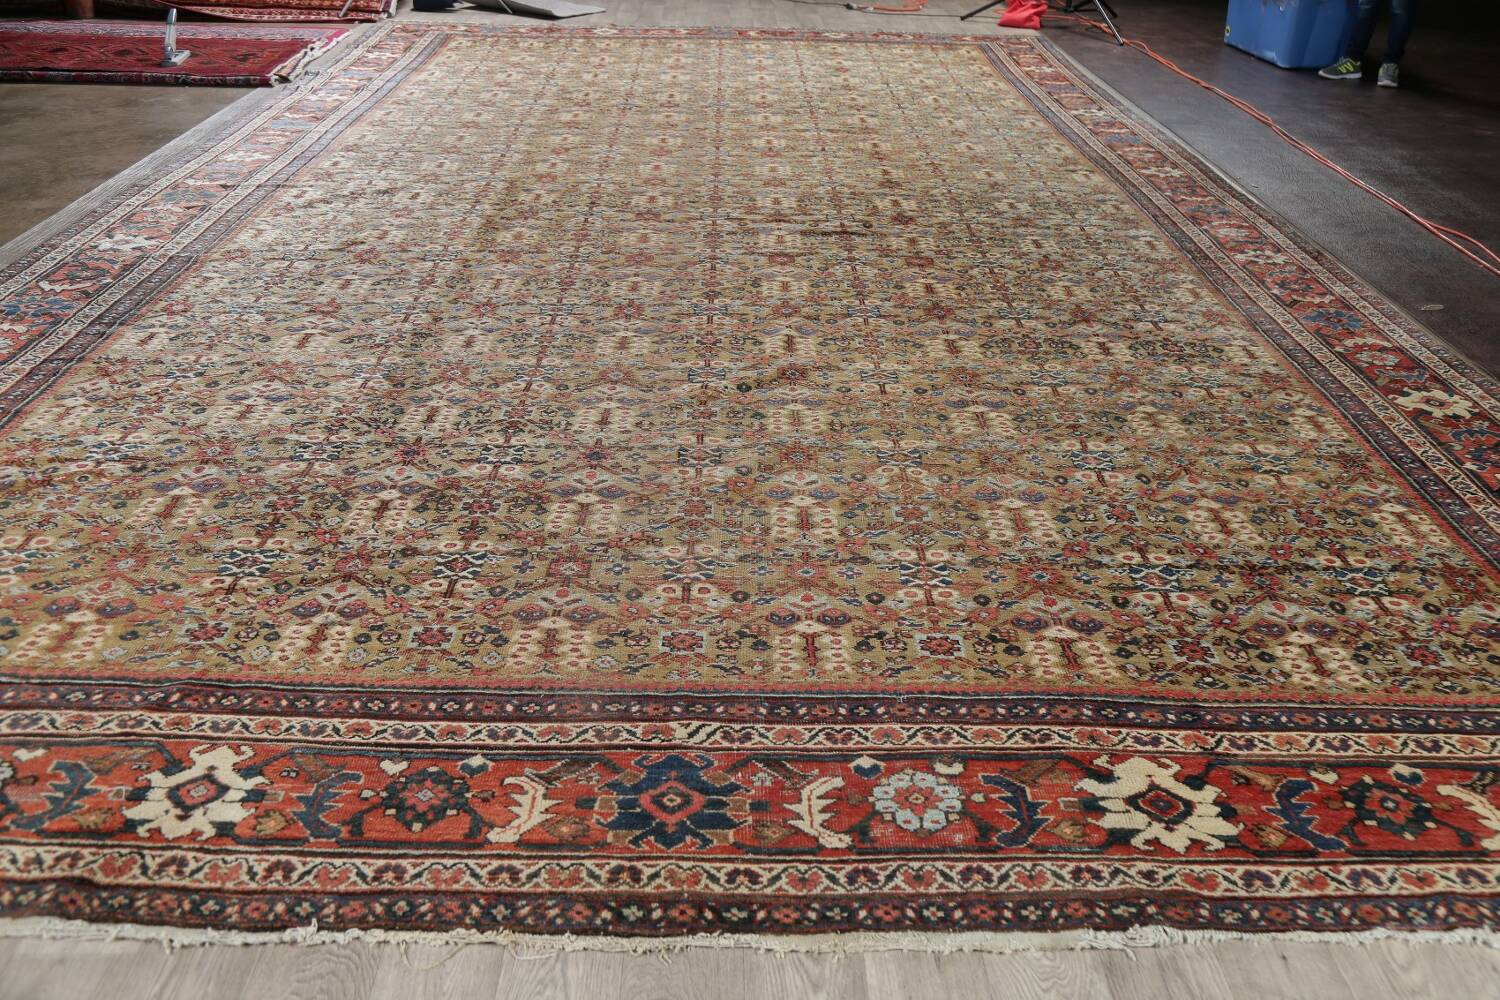 Antique Pre-1900 Sultanabad Persian Rug 13x22 Large image 18